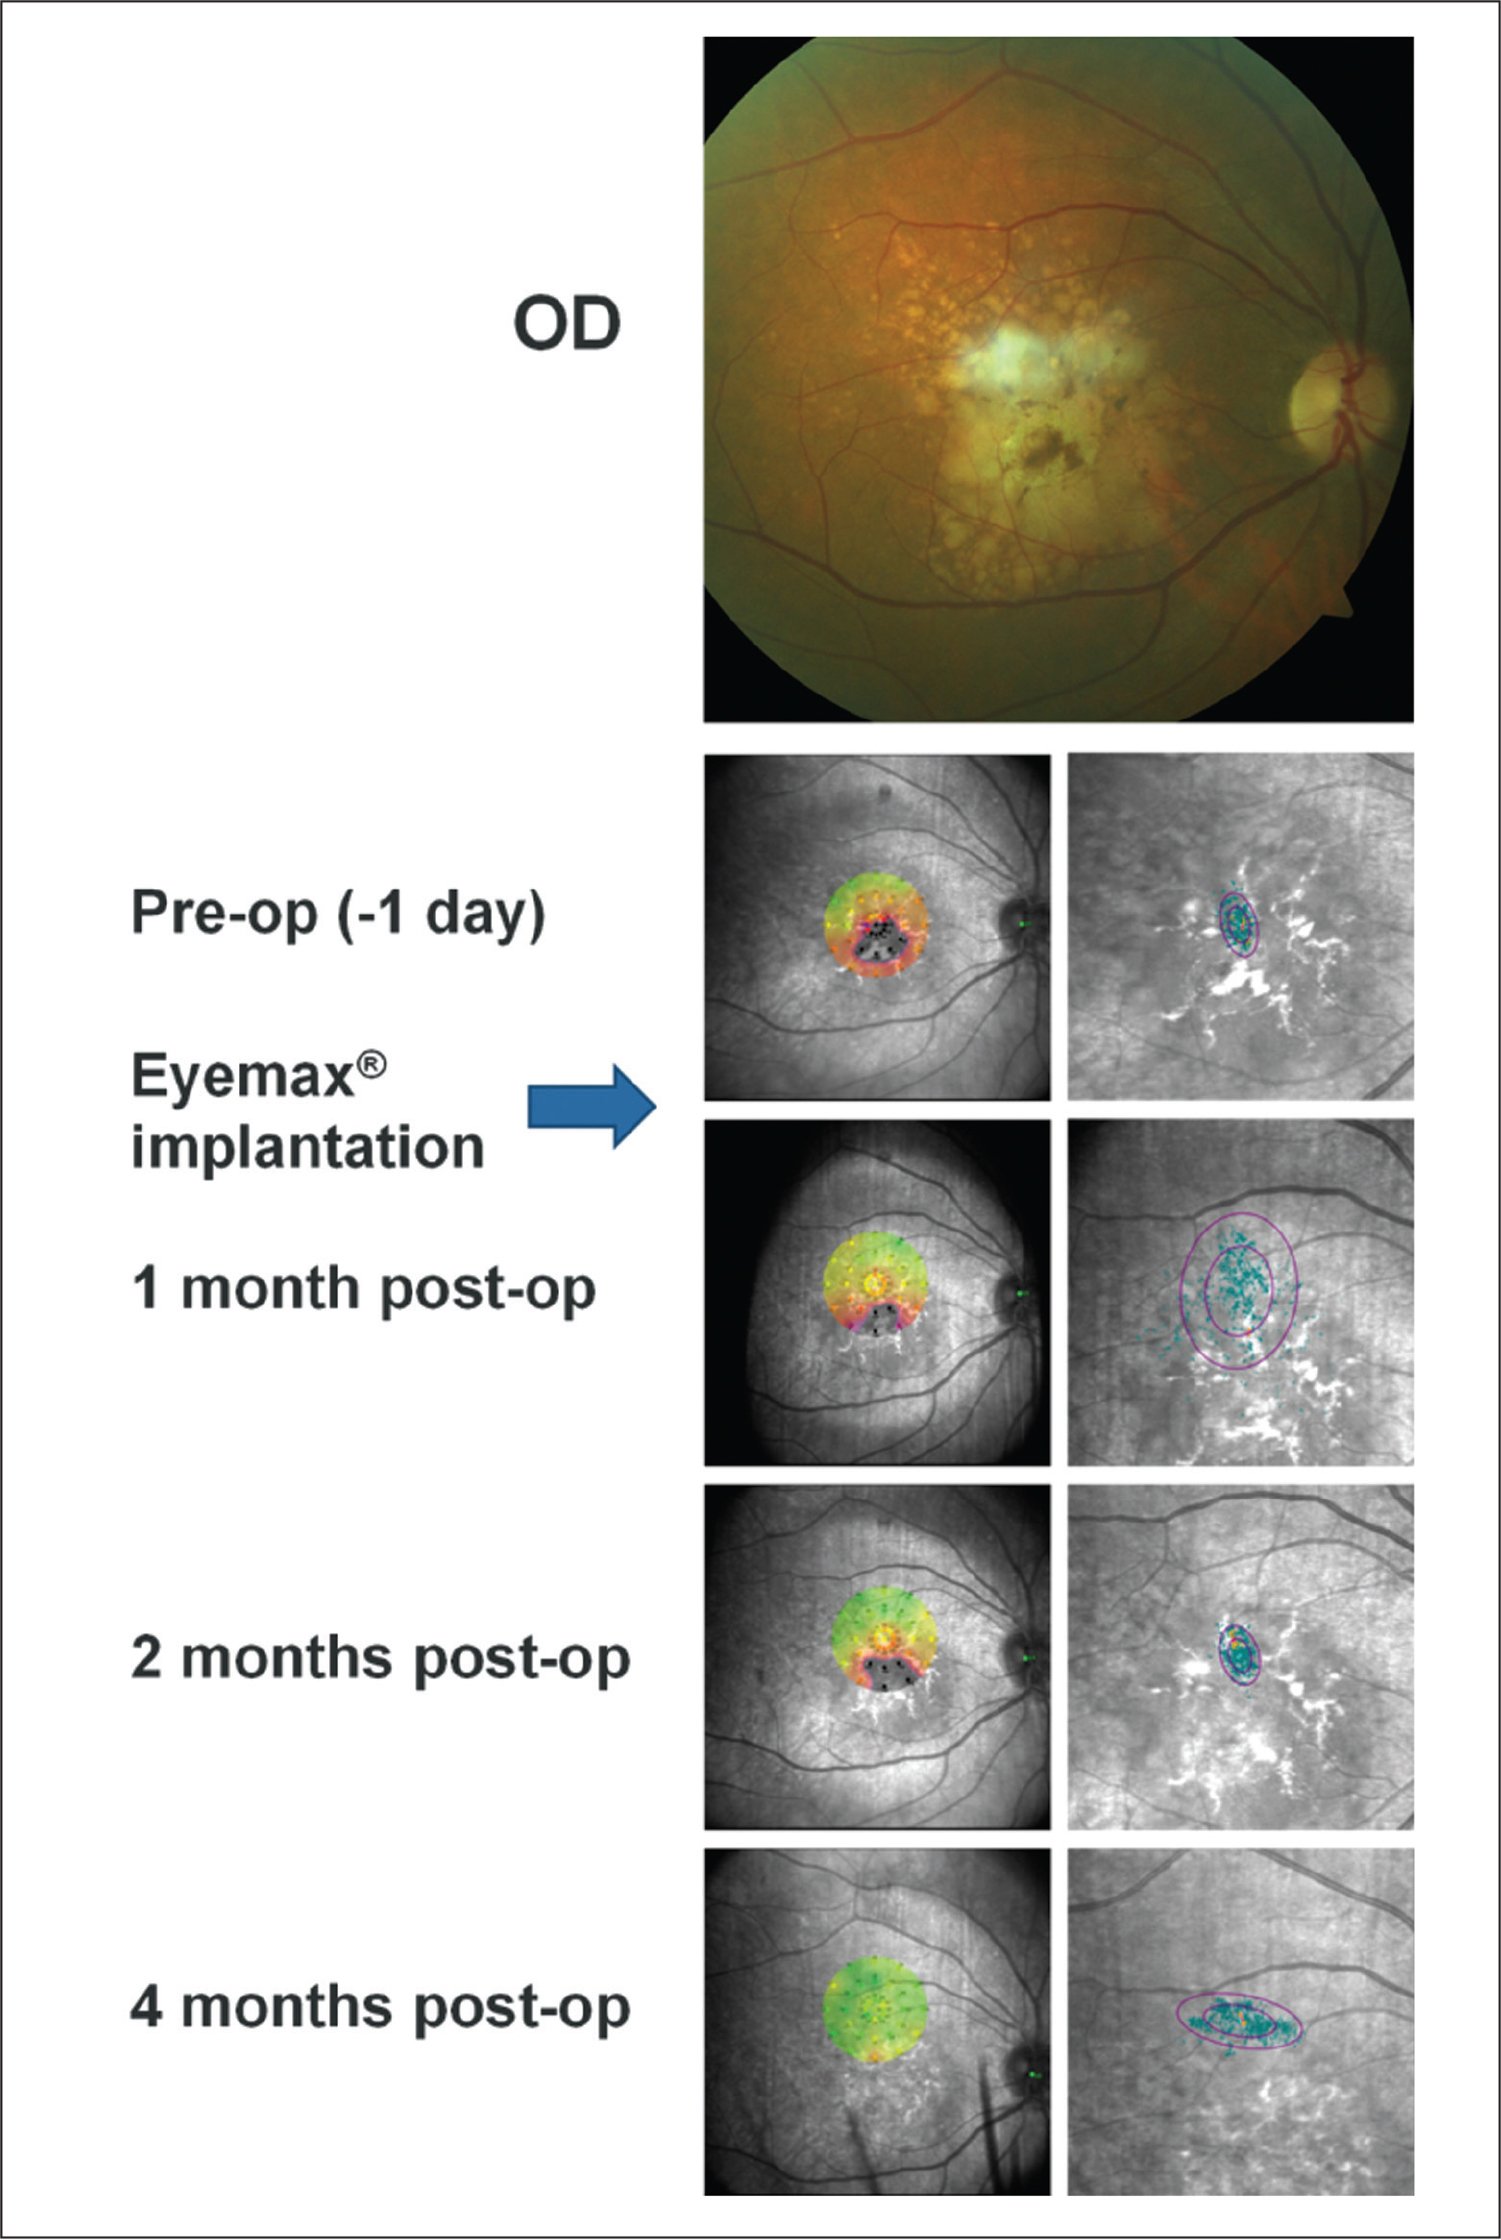 Preoperative color fundus photograph and microperimetric images obtained at baseline and 1, 2, and 4 months after implantation of the Eyemax mono intraocular lens (IOL) (LEH Pharma, London, United Kingdom) (eye 2). Color fundus photograph of the right eye in a 65-year-old woman (top panel) confirming a large disciform scar with soft drusen superiorly and minimal cataract. Left panels show interpolated sensitivity maps at baseline and post-implantation demonstrating the sensitivity at each point of the retina using information from nearby stimuli. Right panels show fixation points (blue dots; orange fixation dots represent points used in the first 10 seconds of the test) and bivariate contour ellipse area analysis; the smaller ellipse contains 63% of all fixation points and the larger ellipse contains 95% of all fixation points. At baseline, the sensitivity map shows a large central scotoma, as indicated by unseen stimuli (black dots), and an area of better sensitivity at the superior border of the scar. The adjacent baseline fixation plot shows fixation is tightly centered within the disciform scar. At 2 months postoperatively, the central scotoma is beginning to shift outside of the sensitivity map as the center of fixation moves superiorly. At 2 months postoperatively, threshold sensitivity is observed to increase and fixation becomes more tightly focused at the superior border of the disciform scar. At 4 months postoperatively, unseen stimuli are completely absent from the sensitivity map as the preferred retinal locus shifts to take advantage of healthier retina superior to the disciform scar with resulting improvement in average threshold sensitivity (from 12.9 dB at baseline to 27 dB at 4 months postoperatively). Stimuli are located 2.5° apart, thereby permitting, with reference to retinal landmarks, an estimate of the how far the preferred retinal locus has moved from baseline, approximately 8°. The fixation plot confirms a redistribution of fixation points to the superior retina well away from the disciform scar.